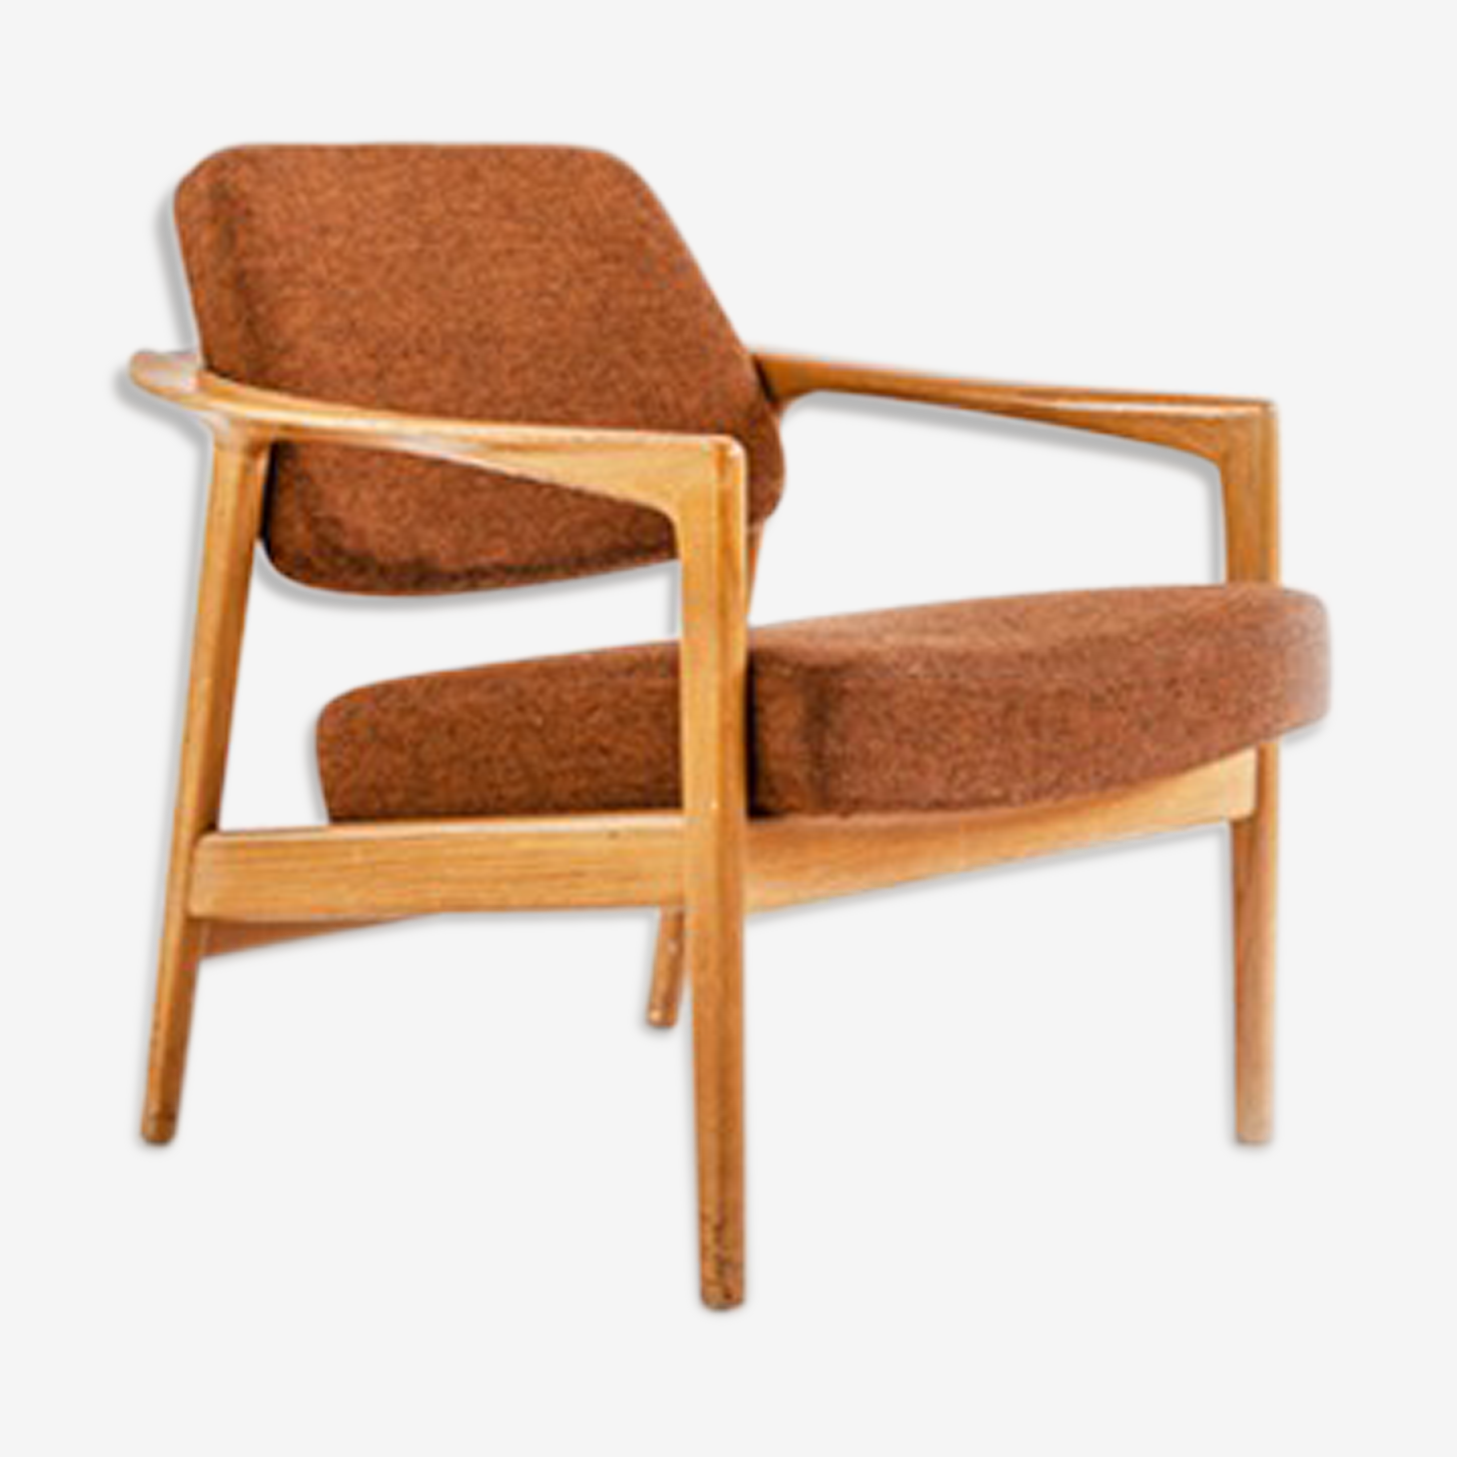 Folke Ohlsson oak Chair